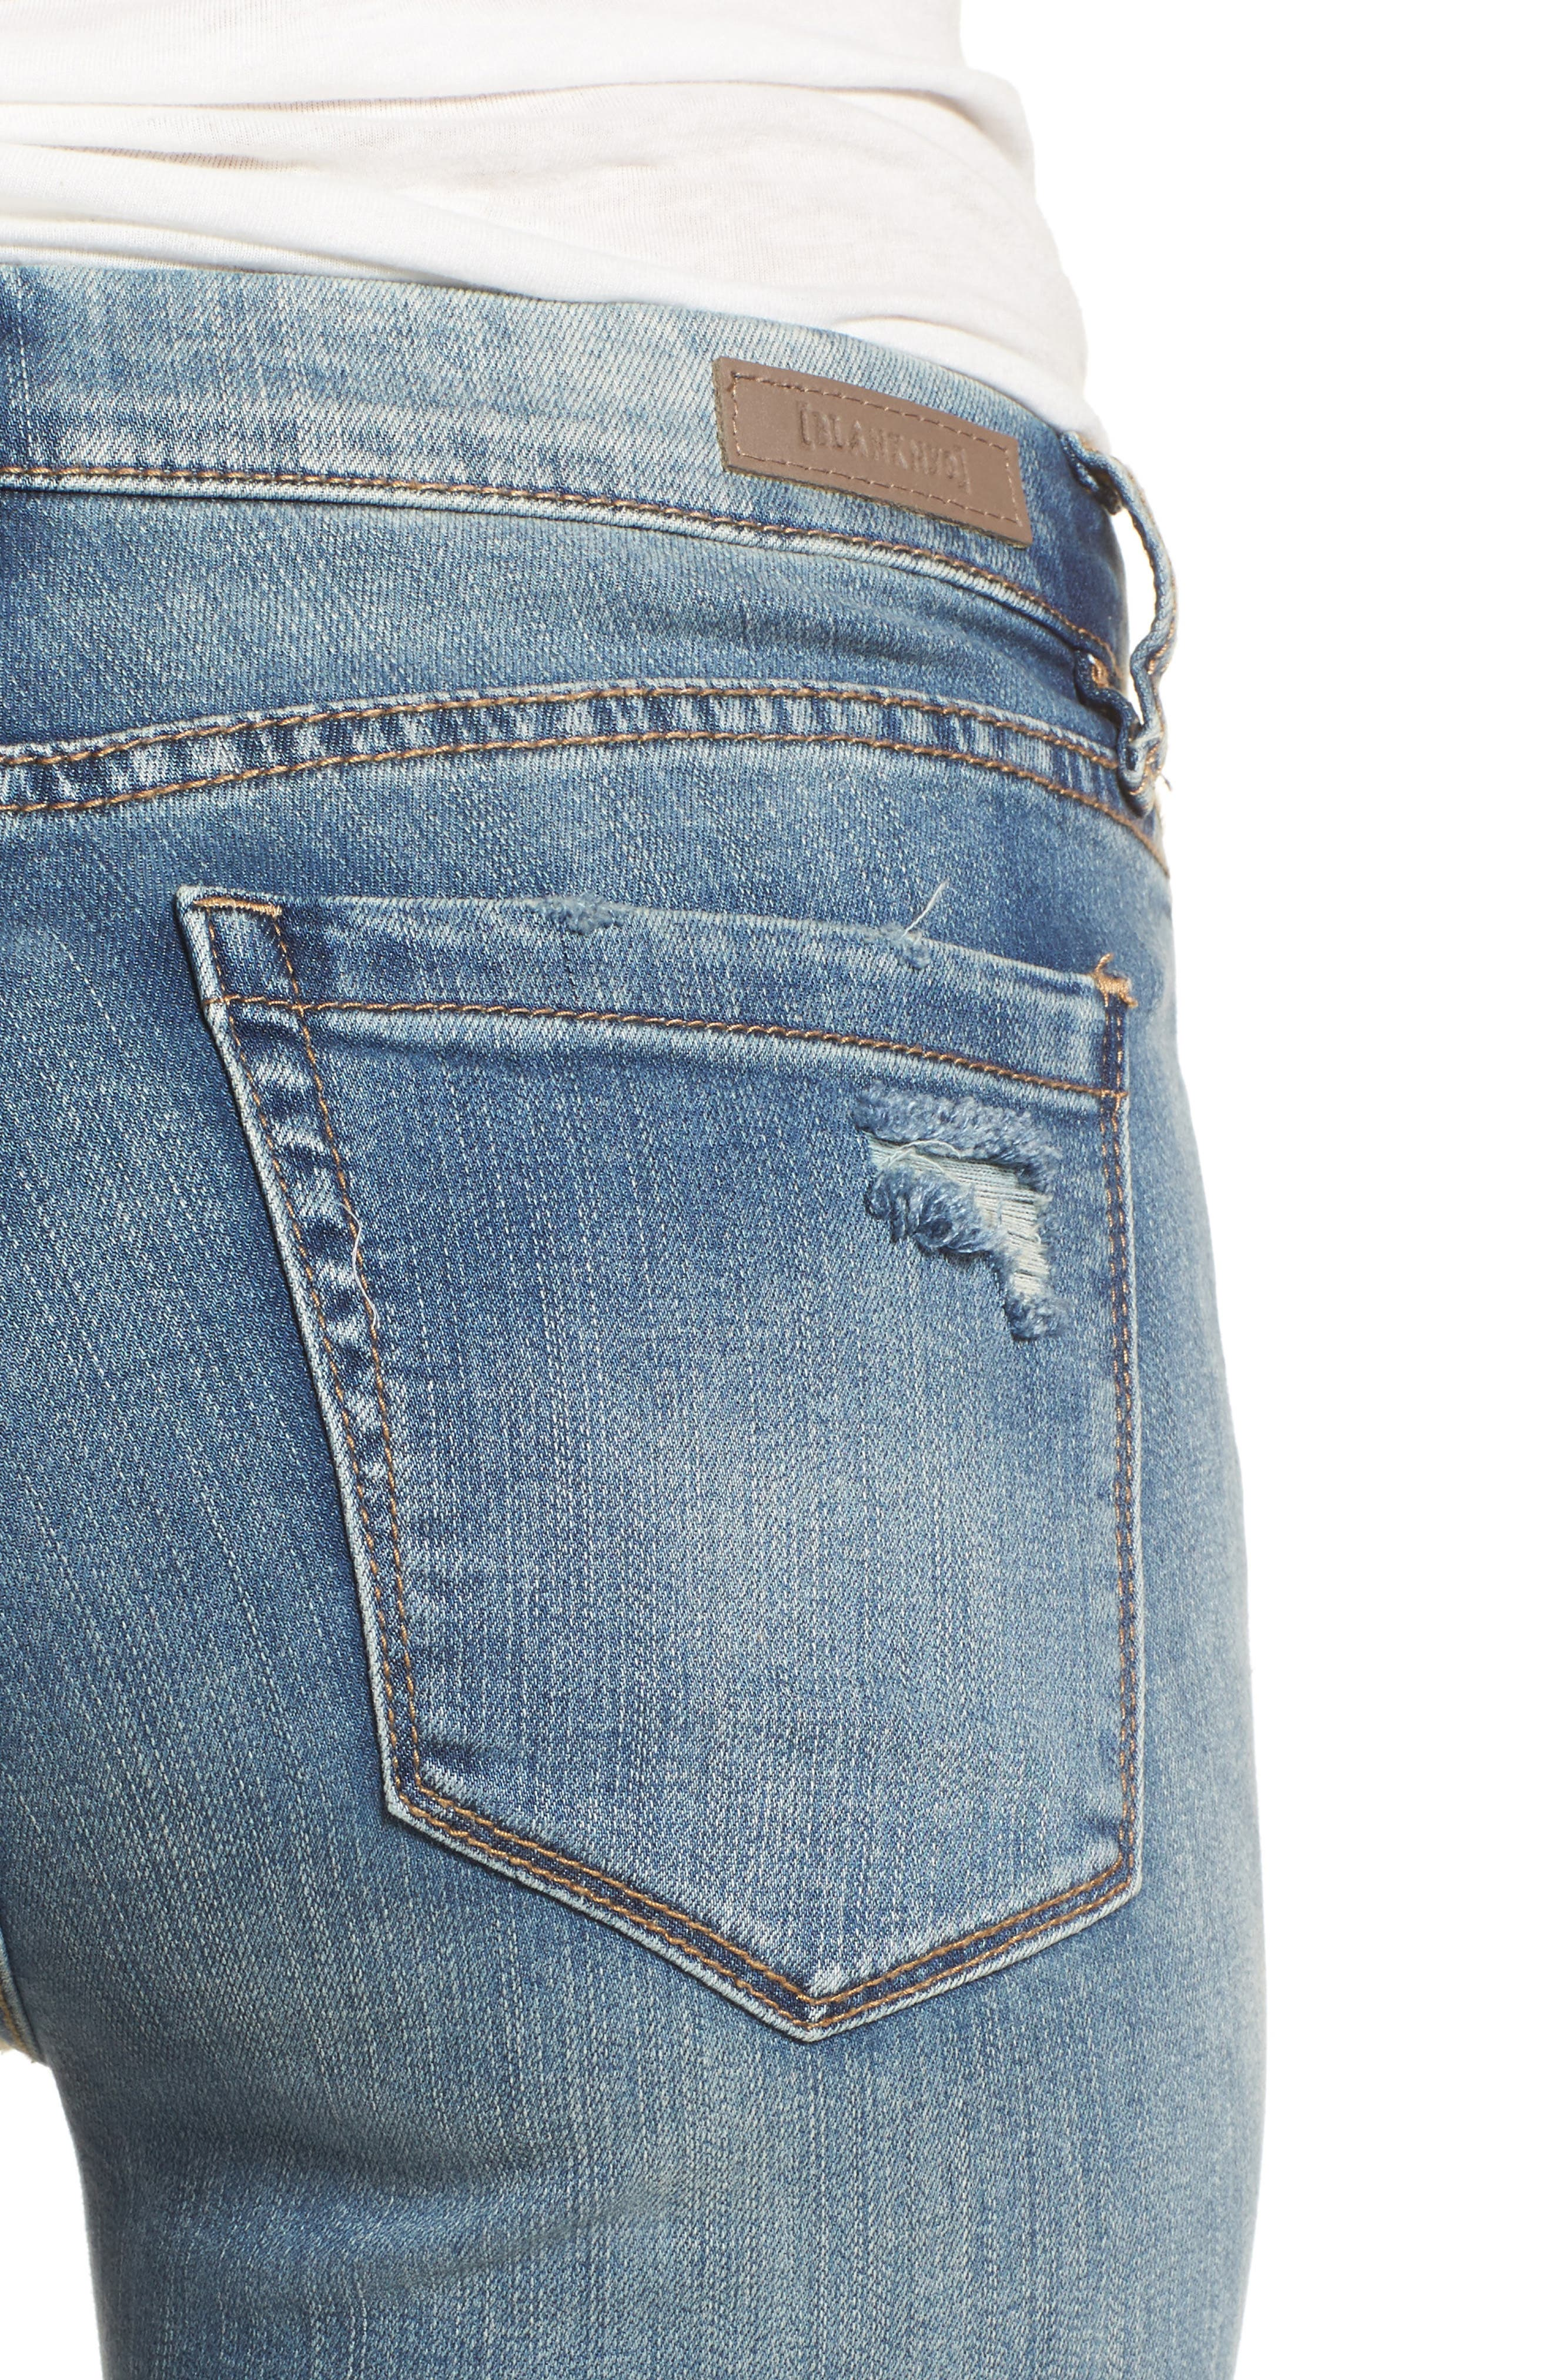 Distressed High Waist Skinny Jeans,                             Alternate thumbnail 4, color,                             400